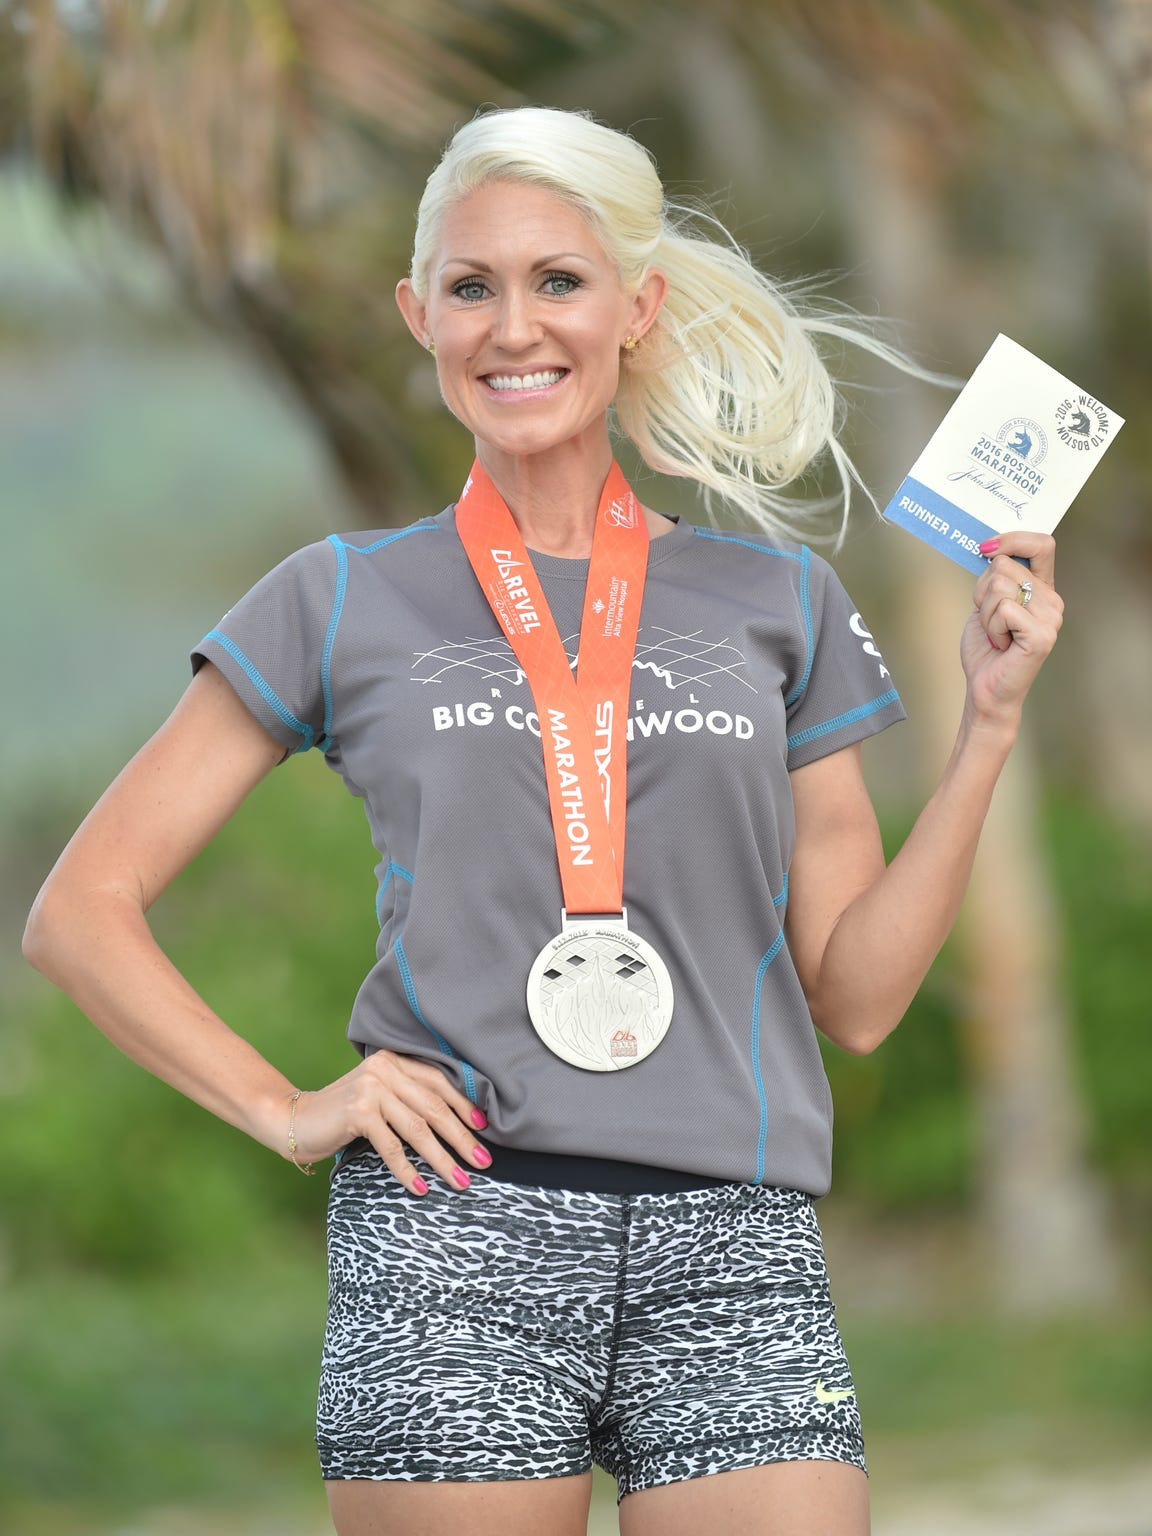 Stephanie Clark proudly displays her Runner's Passport to the upcoming Boston Marathon at Asan Beach Park on April 7.